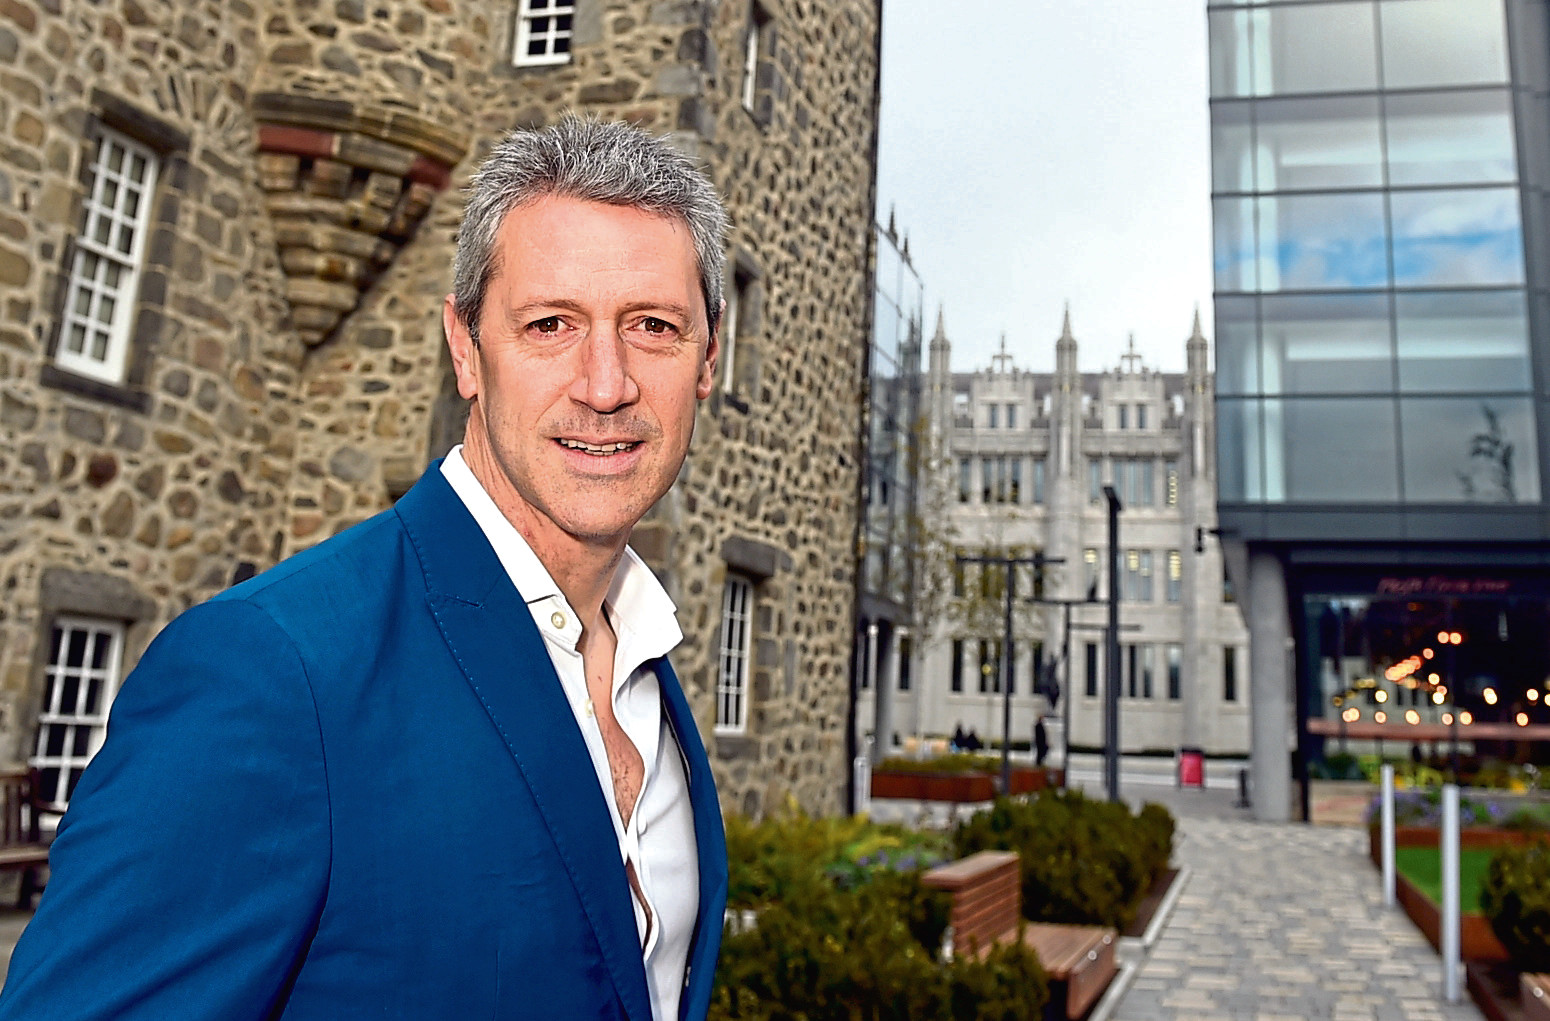 Chris Foy, chief executive of VisitAberdeenshire, pictured at Marischal Square, Aberdeen.  Picture by Jim Irvine